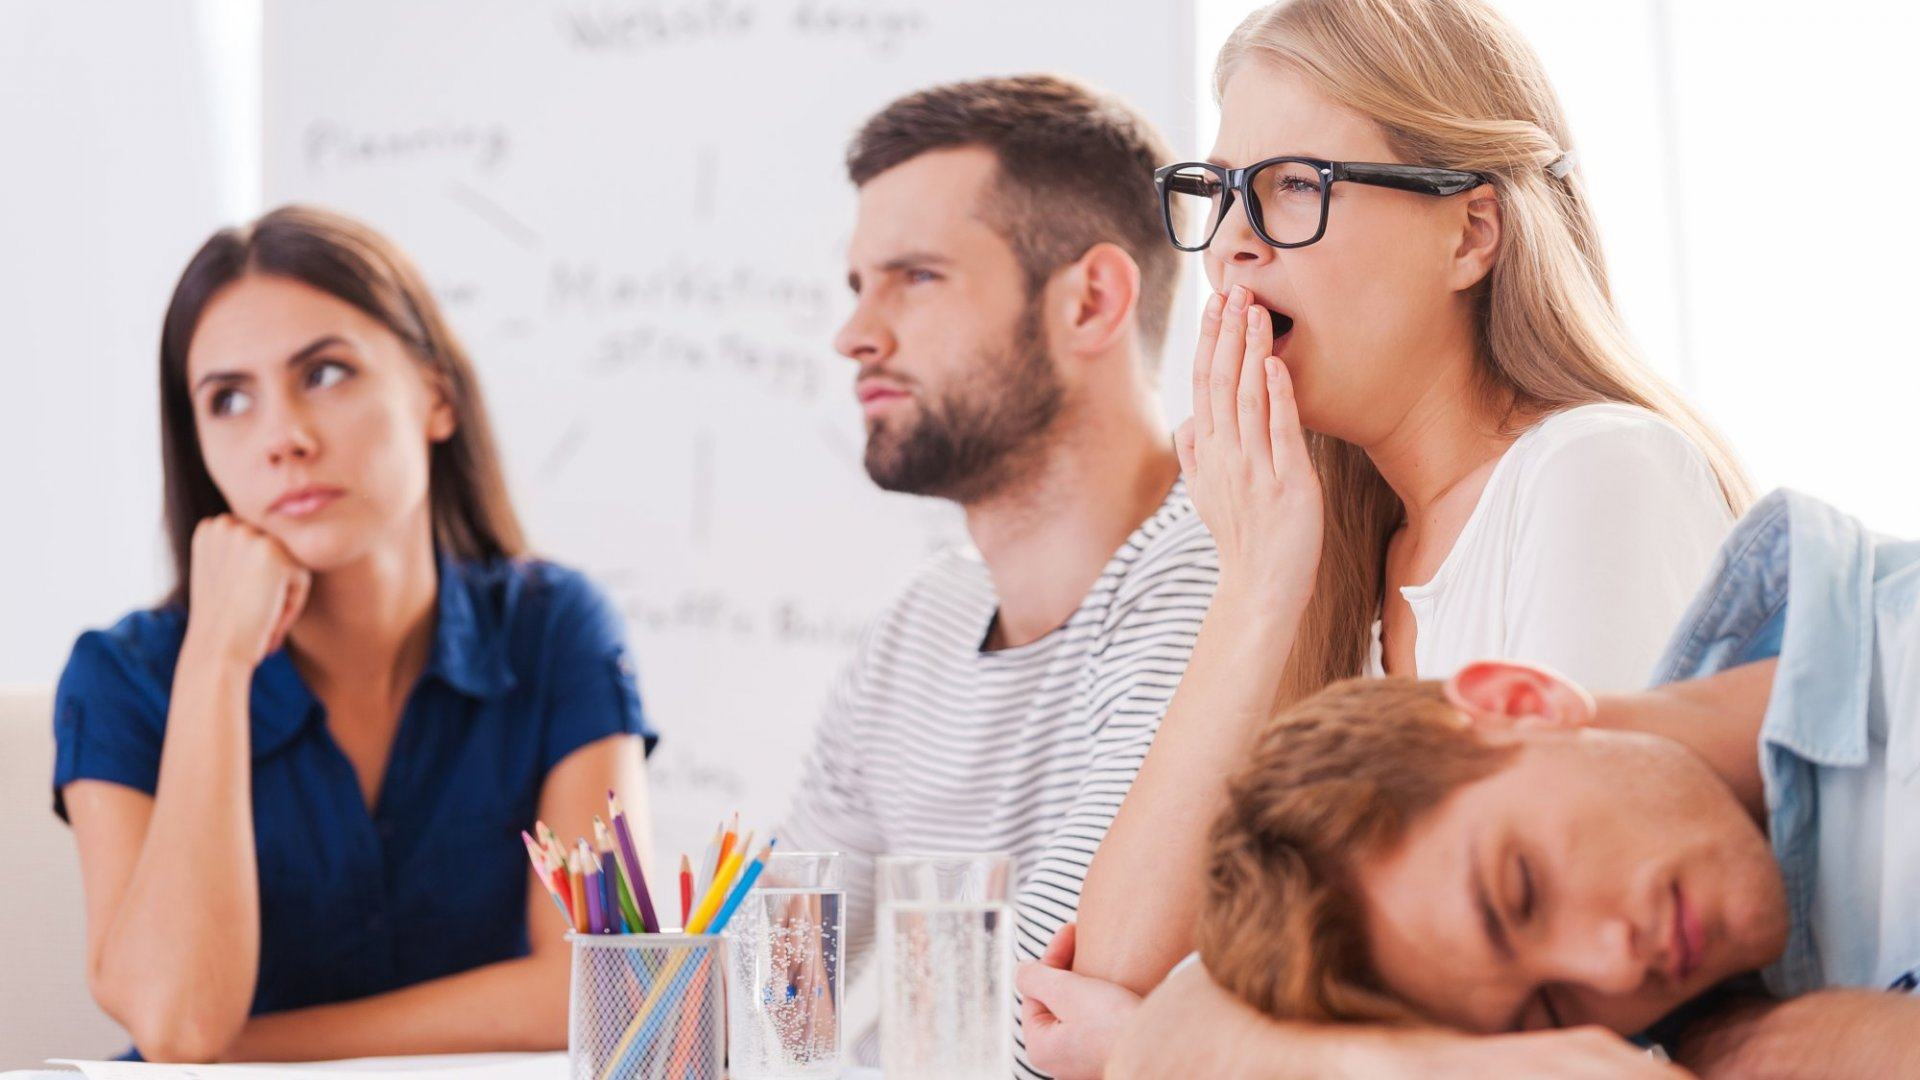 Are You a Boring Presenter? 1 Small Change Can Fix That